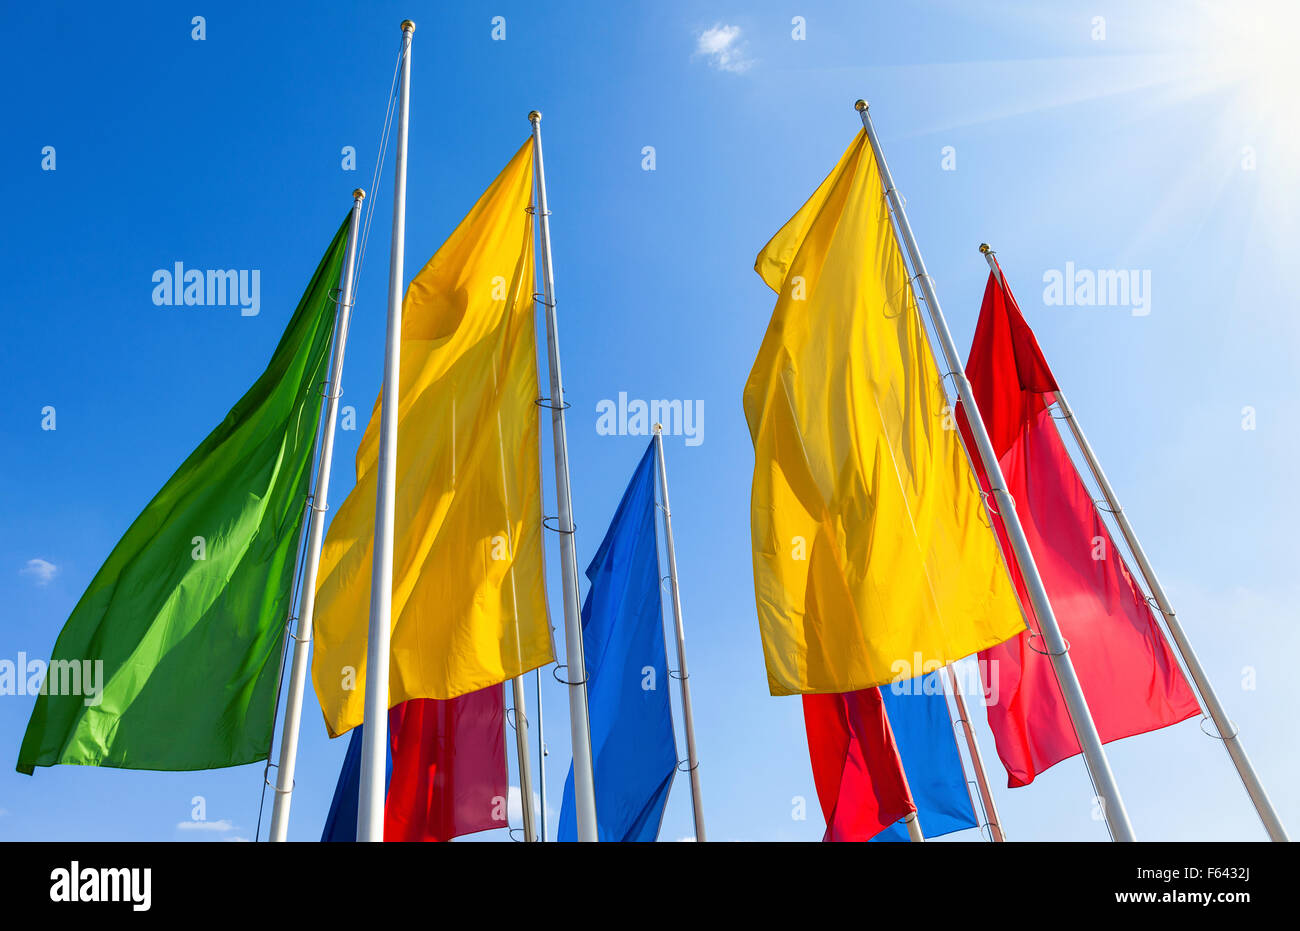 Colorful flags fluttering on the blue sky background - Stock Image